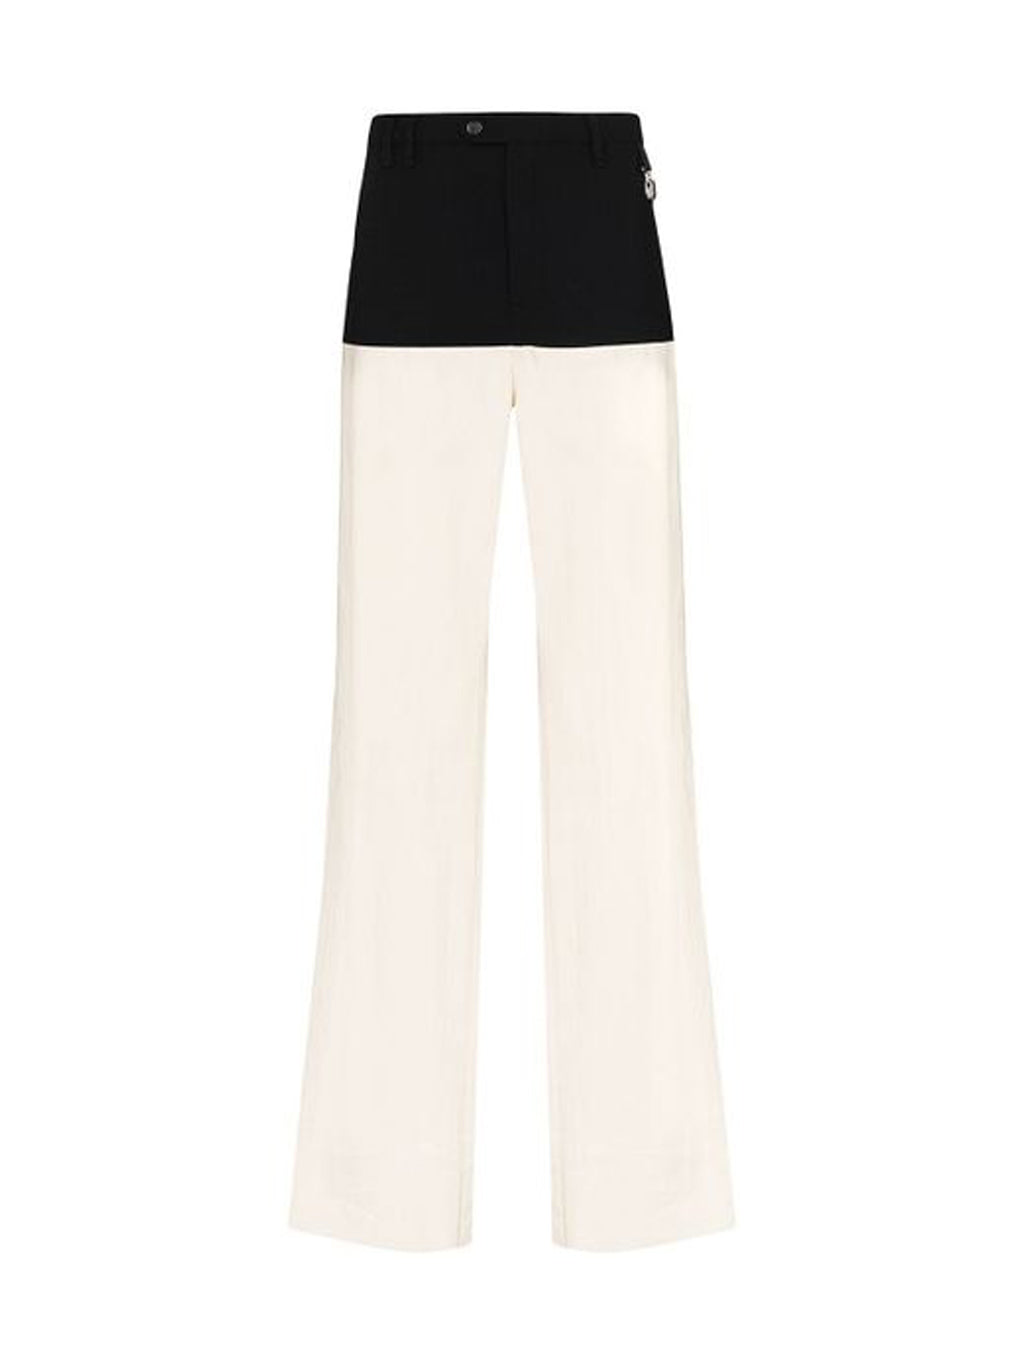 Beige & Black Color Blocked Suspender Pants